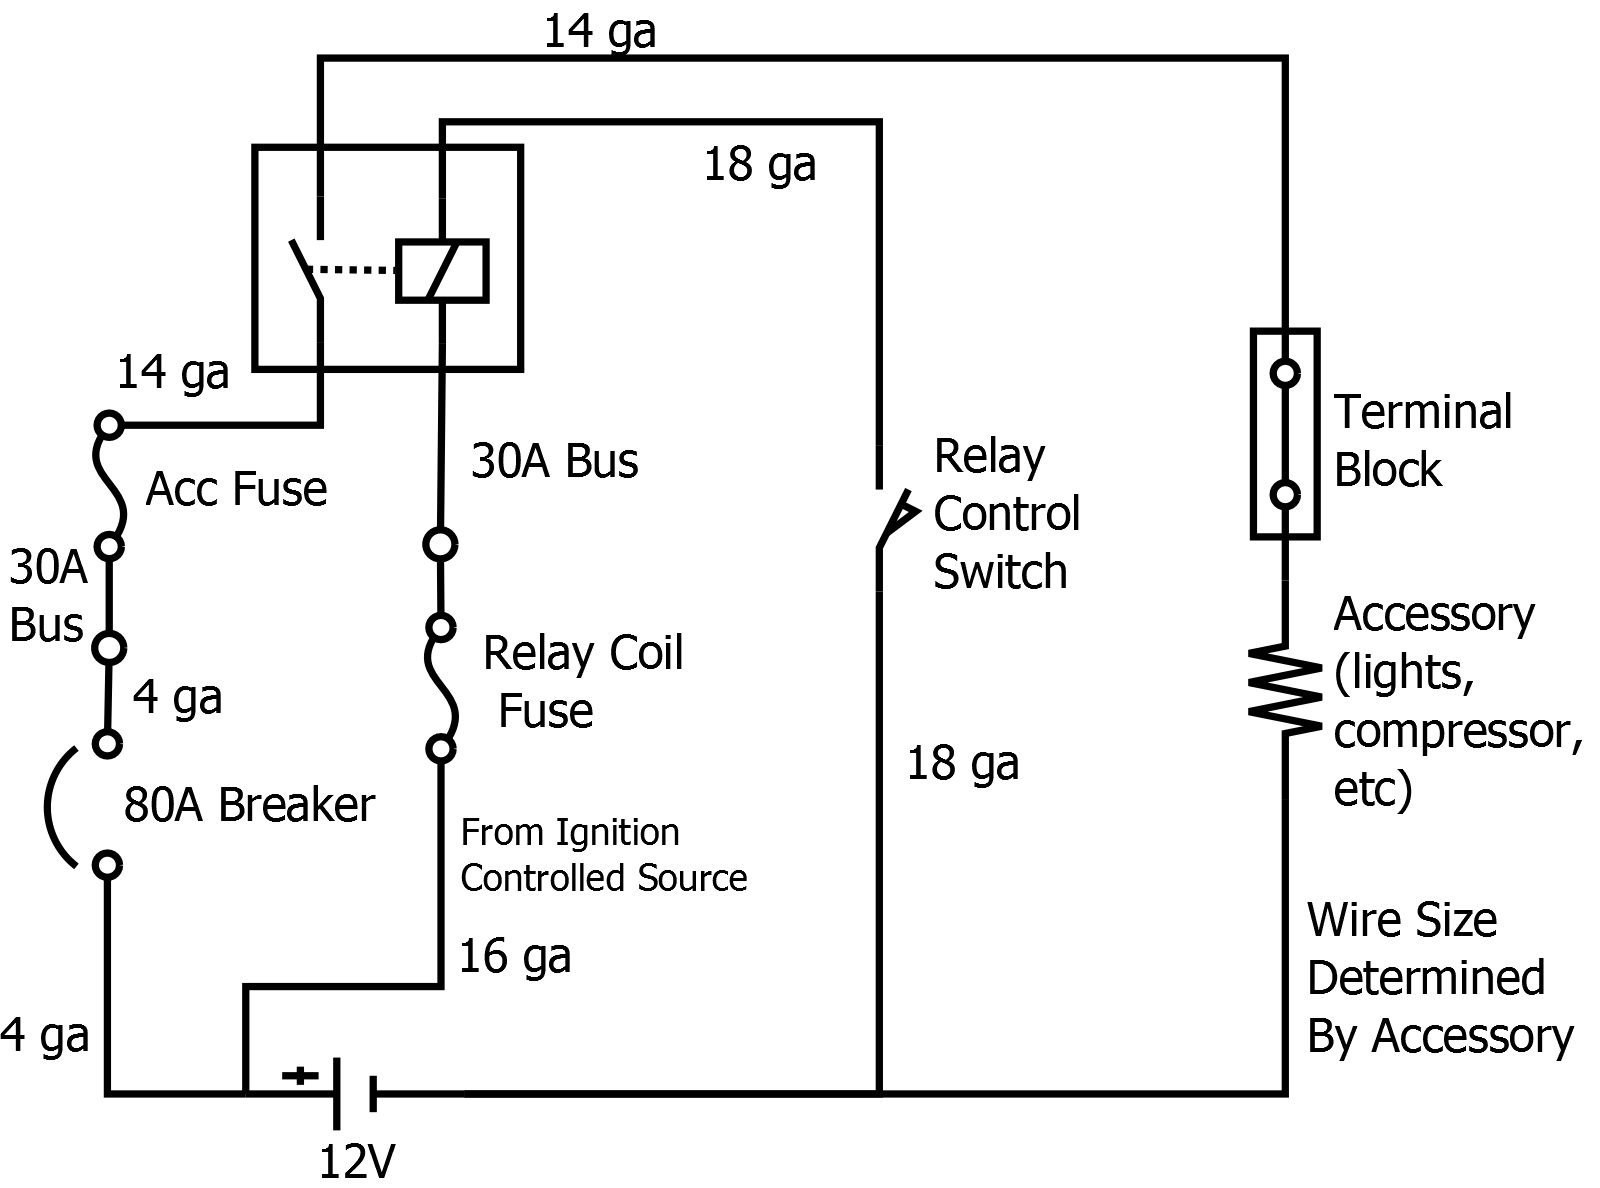 simple schematic diagram custom relay and fuse box for accessories (spod knockoff ...